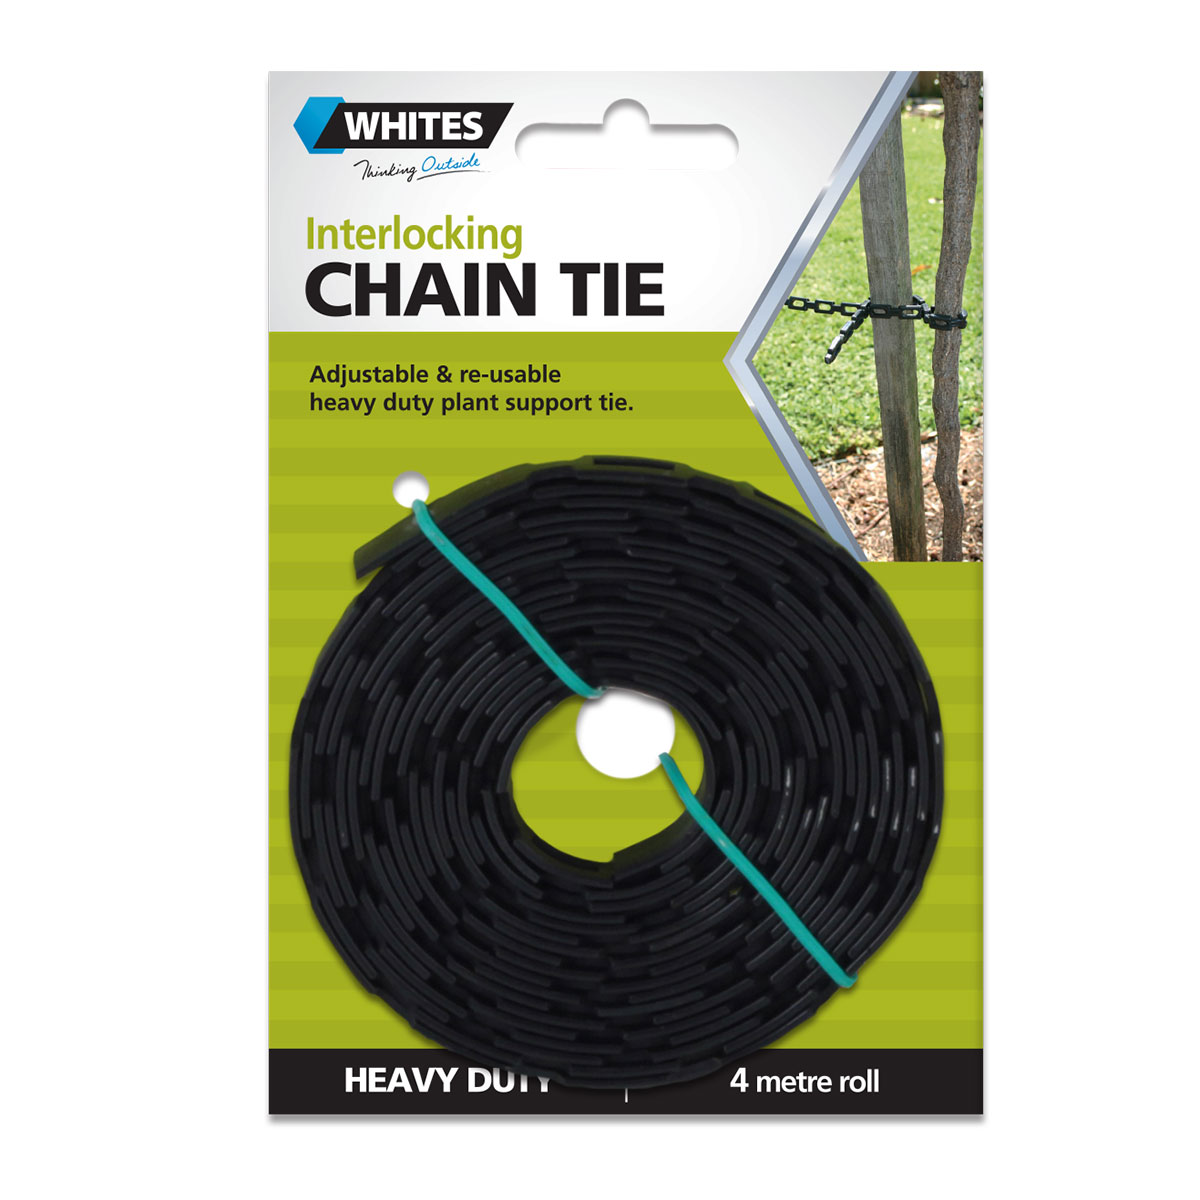 18712 Interlocking Chain Tie